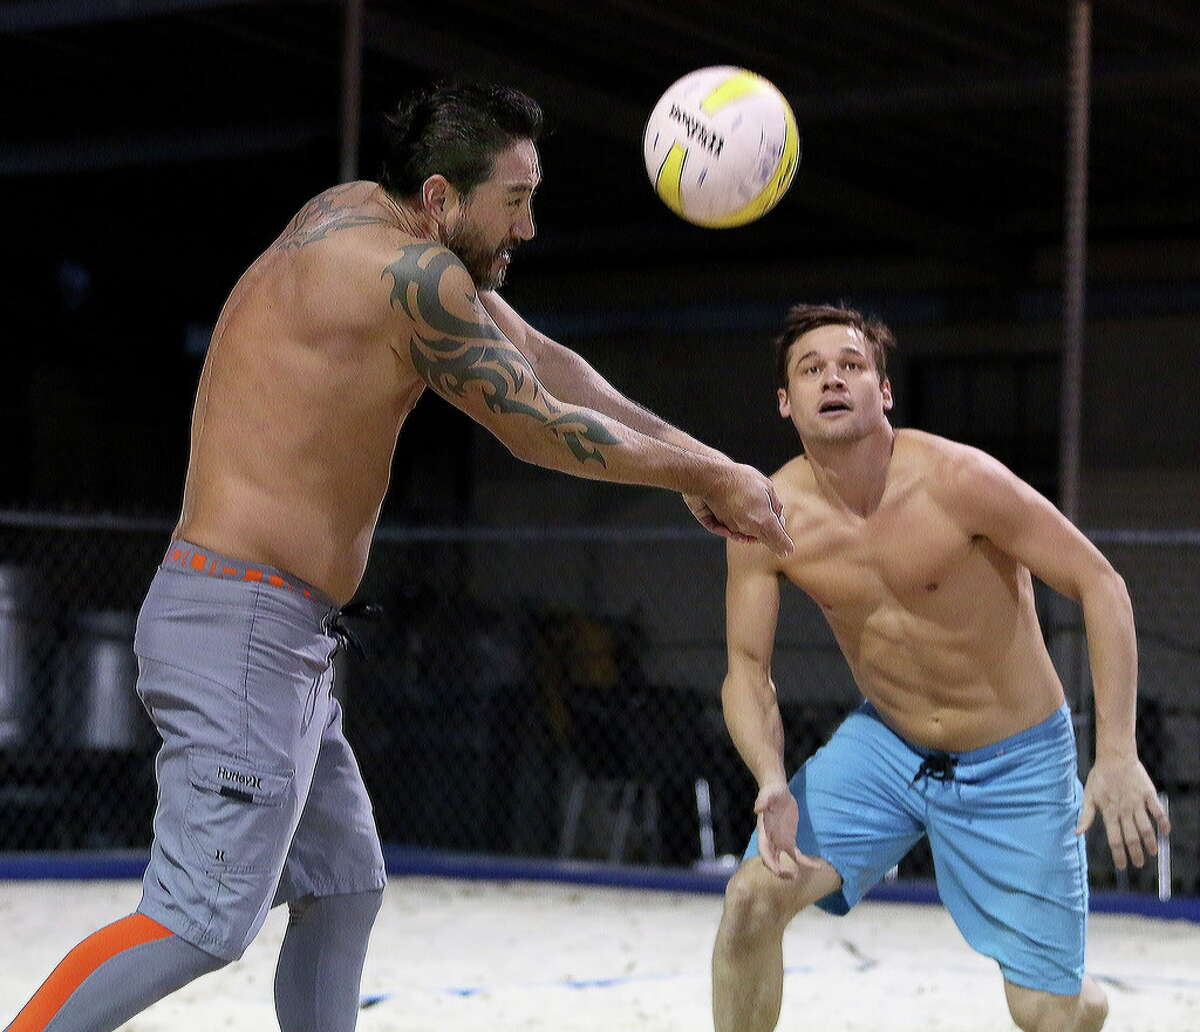 Teammates Johnny Tipton, left, and David Pearce play volleyball with their friends at Wakefield Crowbar Thursday, Dec. 1, 2016, in Houston. Wakefield Crowbar is a bar with three regulation-sized volleyball courts located in Garden Oaks. ( Yi-Chin Lee / Houston Chronicle )